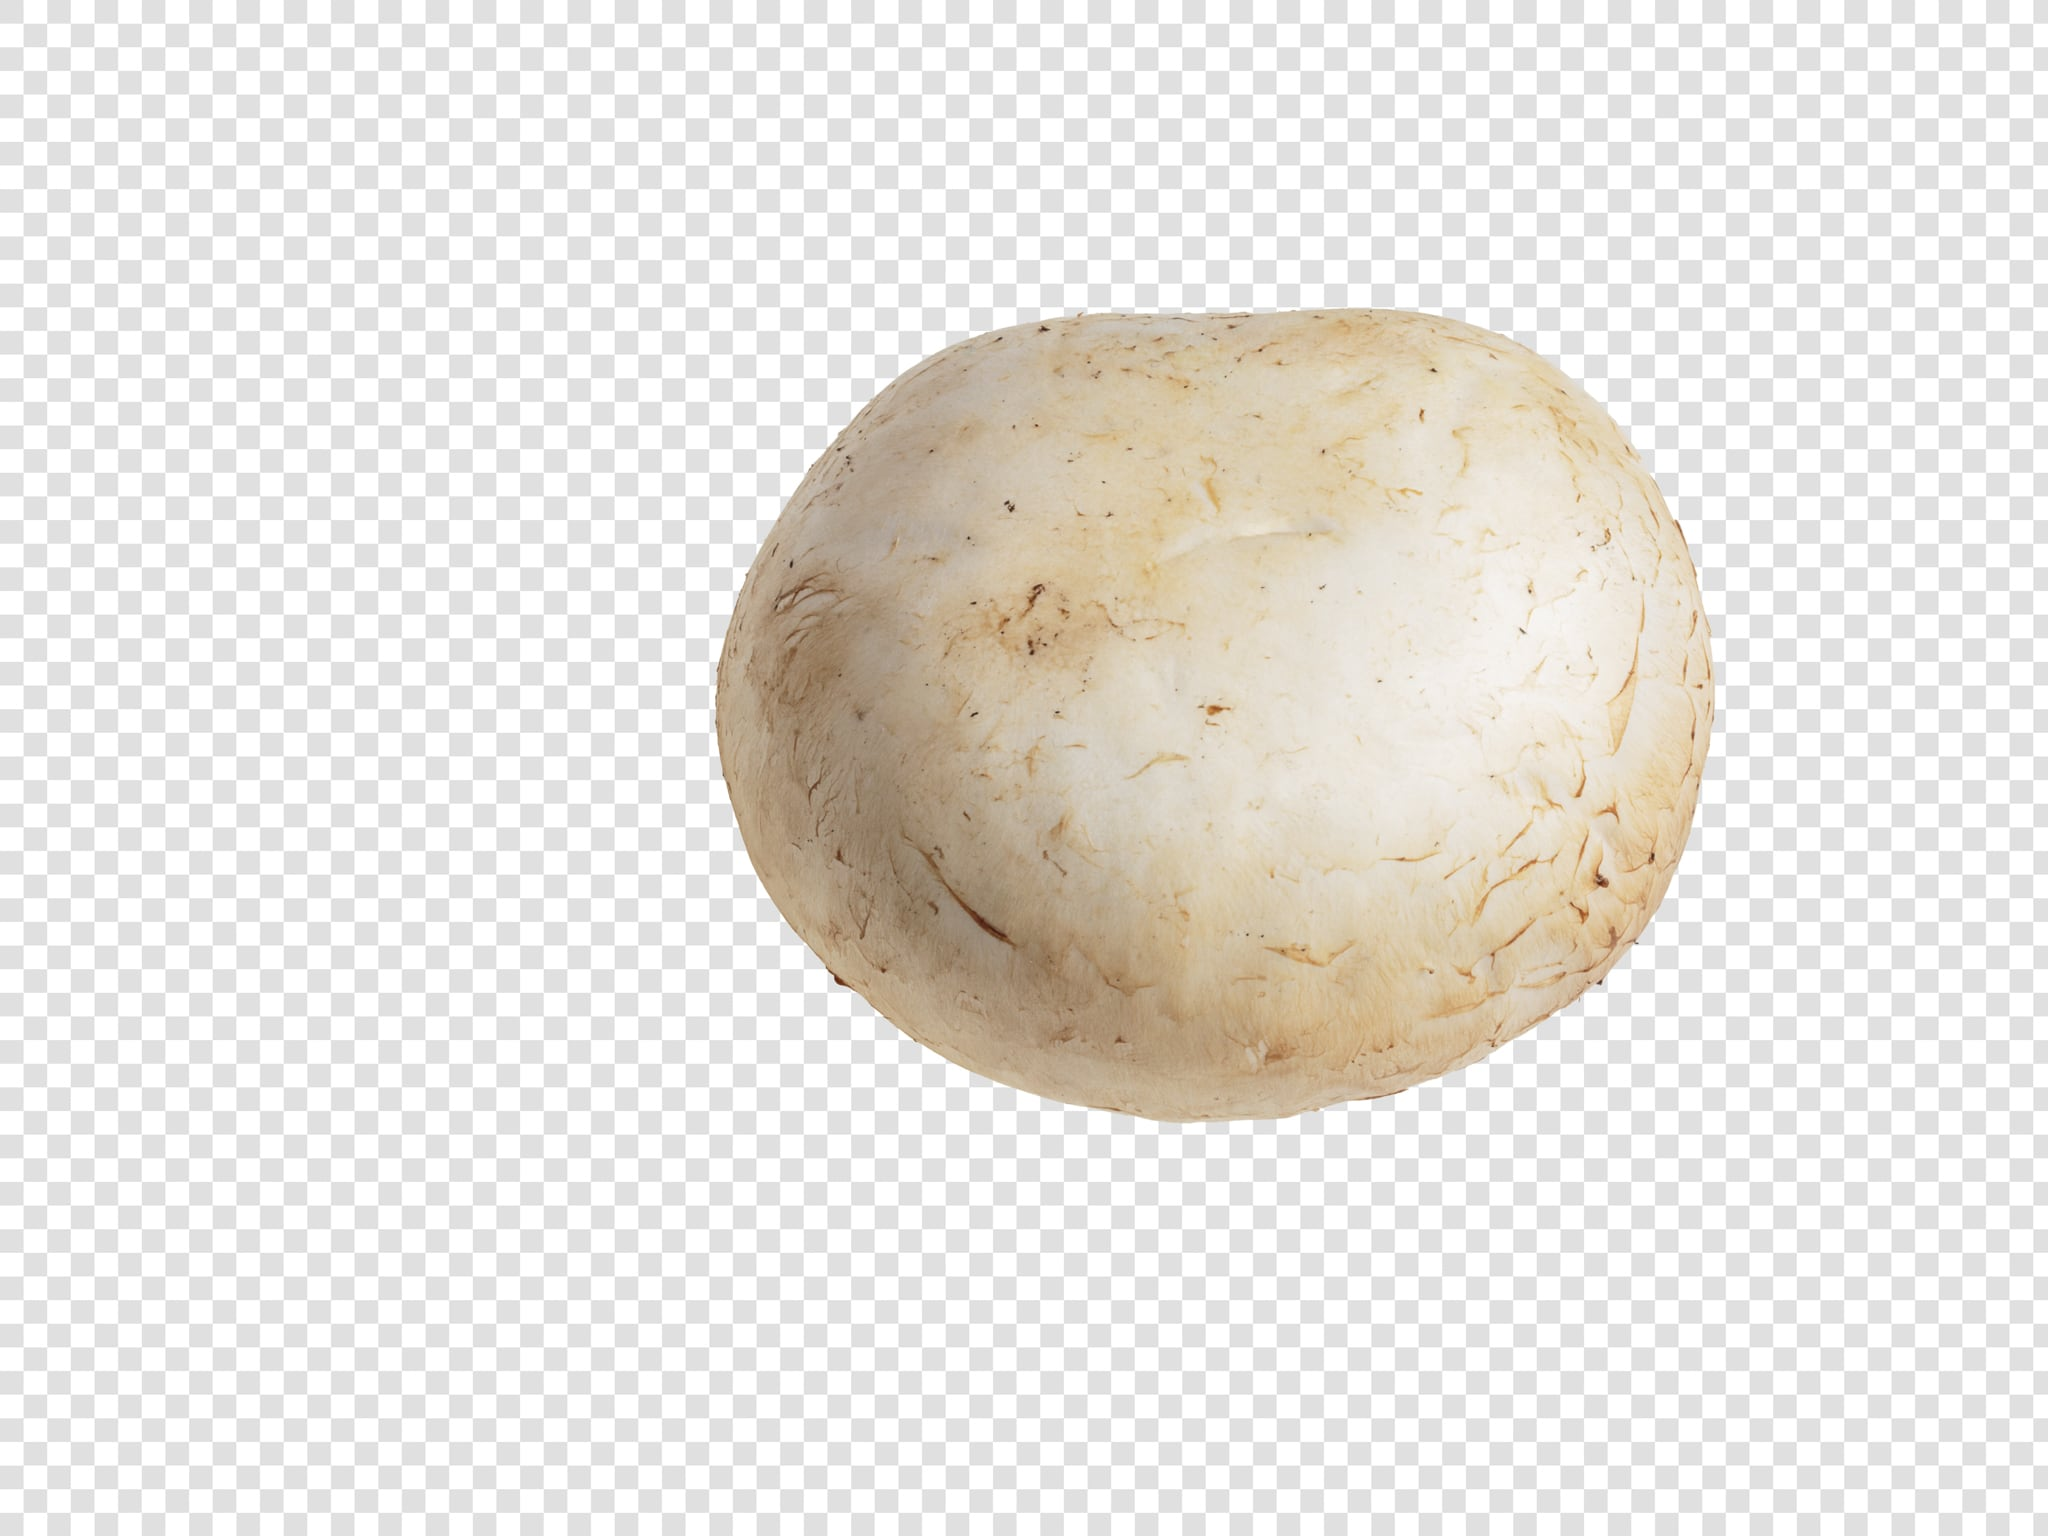 Champignon image with transparent background